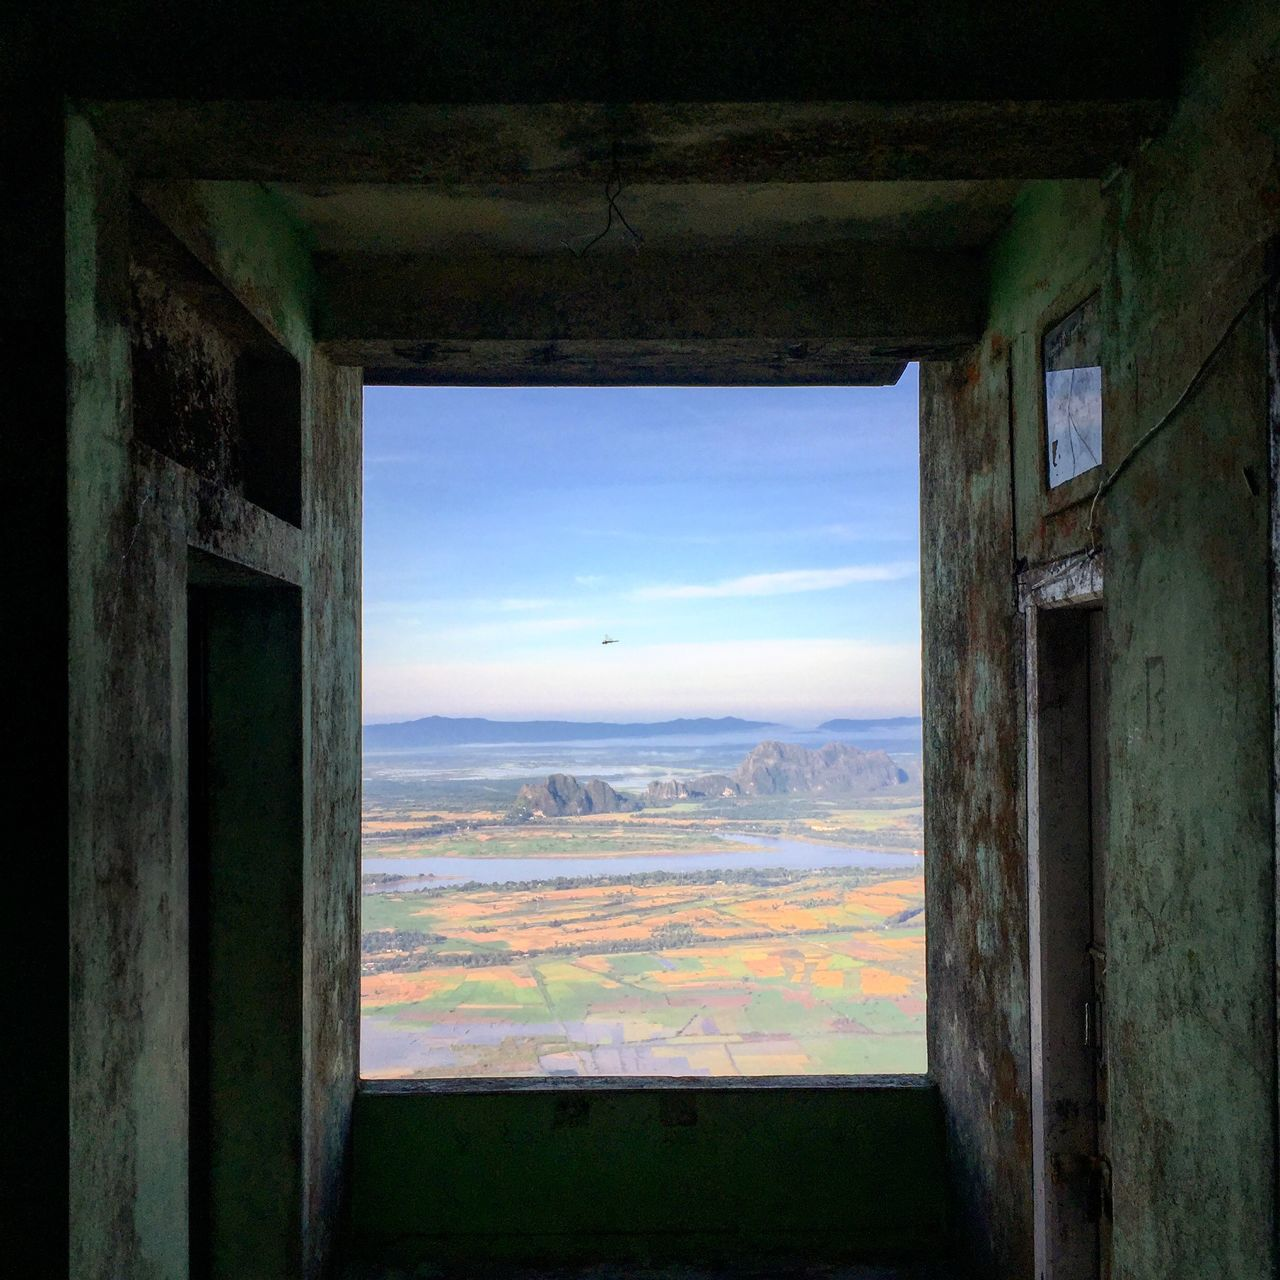 SCENIC VIEW OF SEA AGAINST SKY SEEN THROUGH ARCH